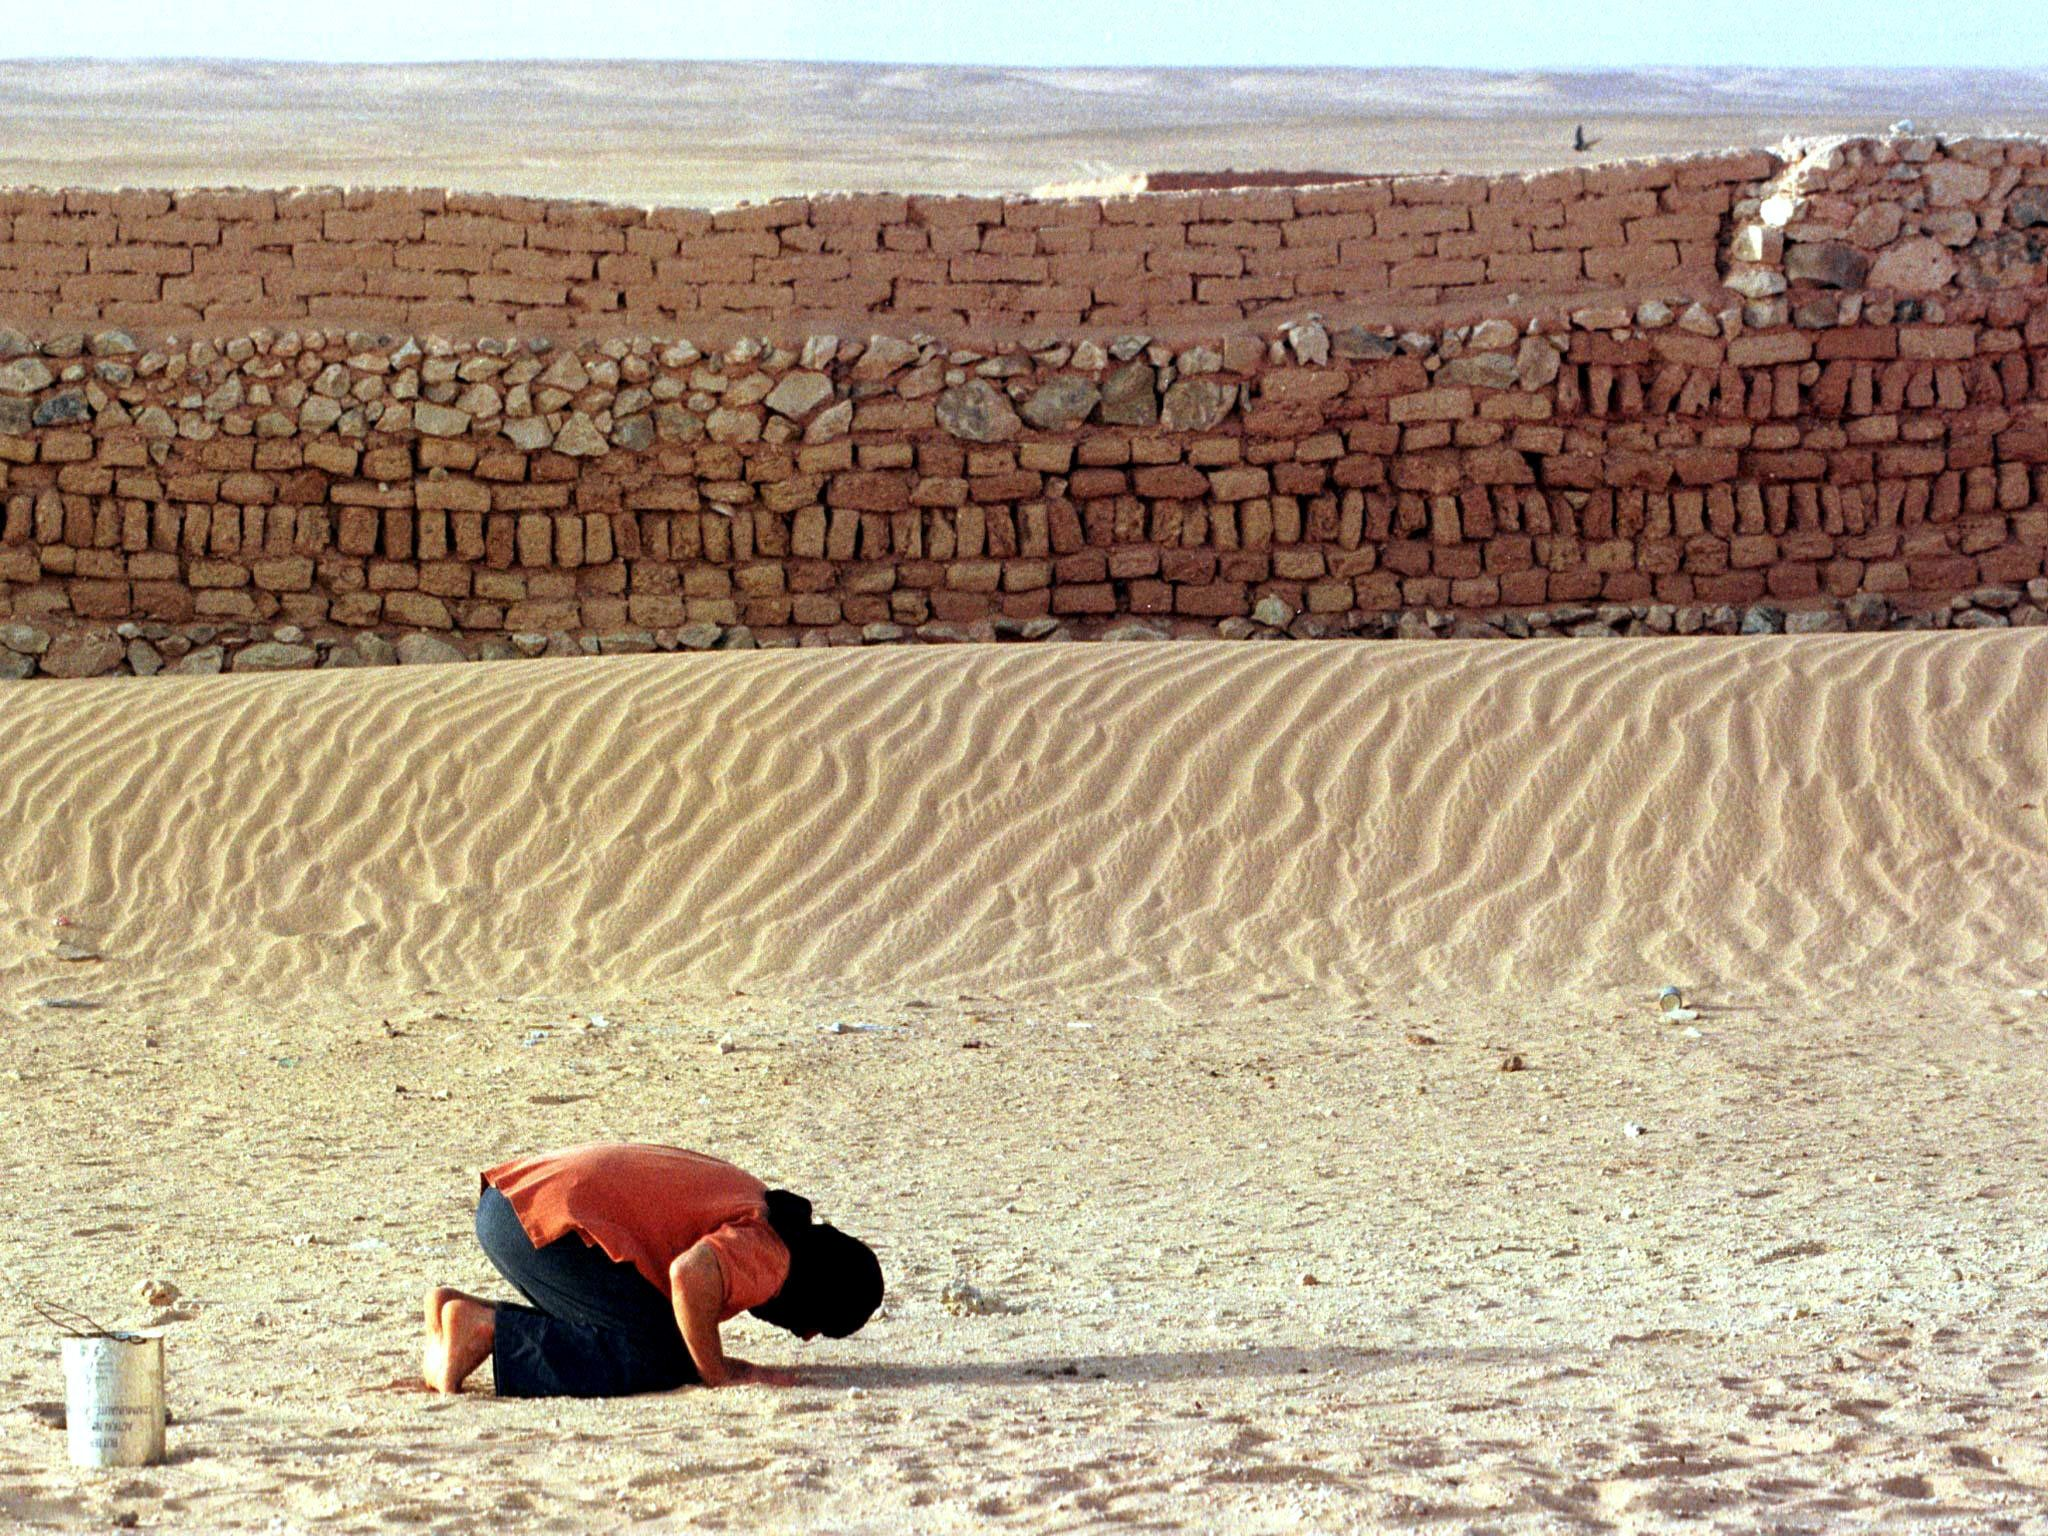 A Moroccan prisoner of war prays beside the wall of a Saharawi prison in the Algerian